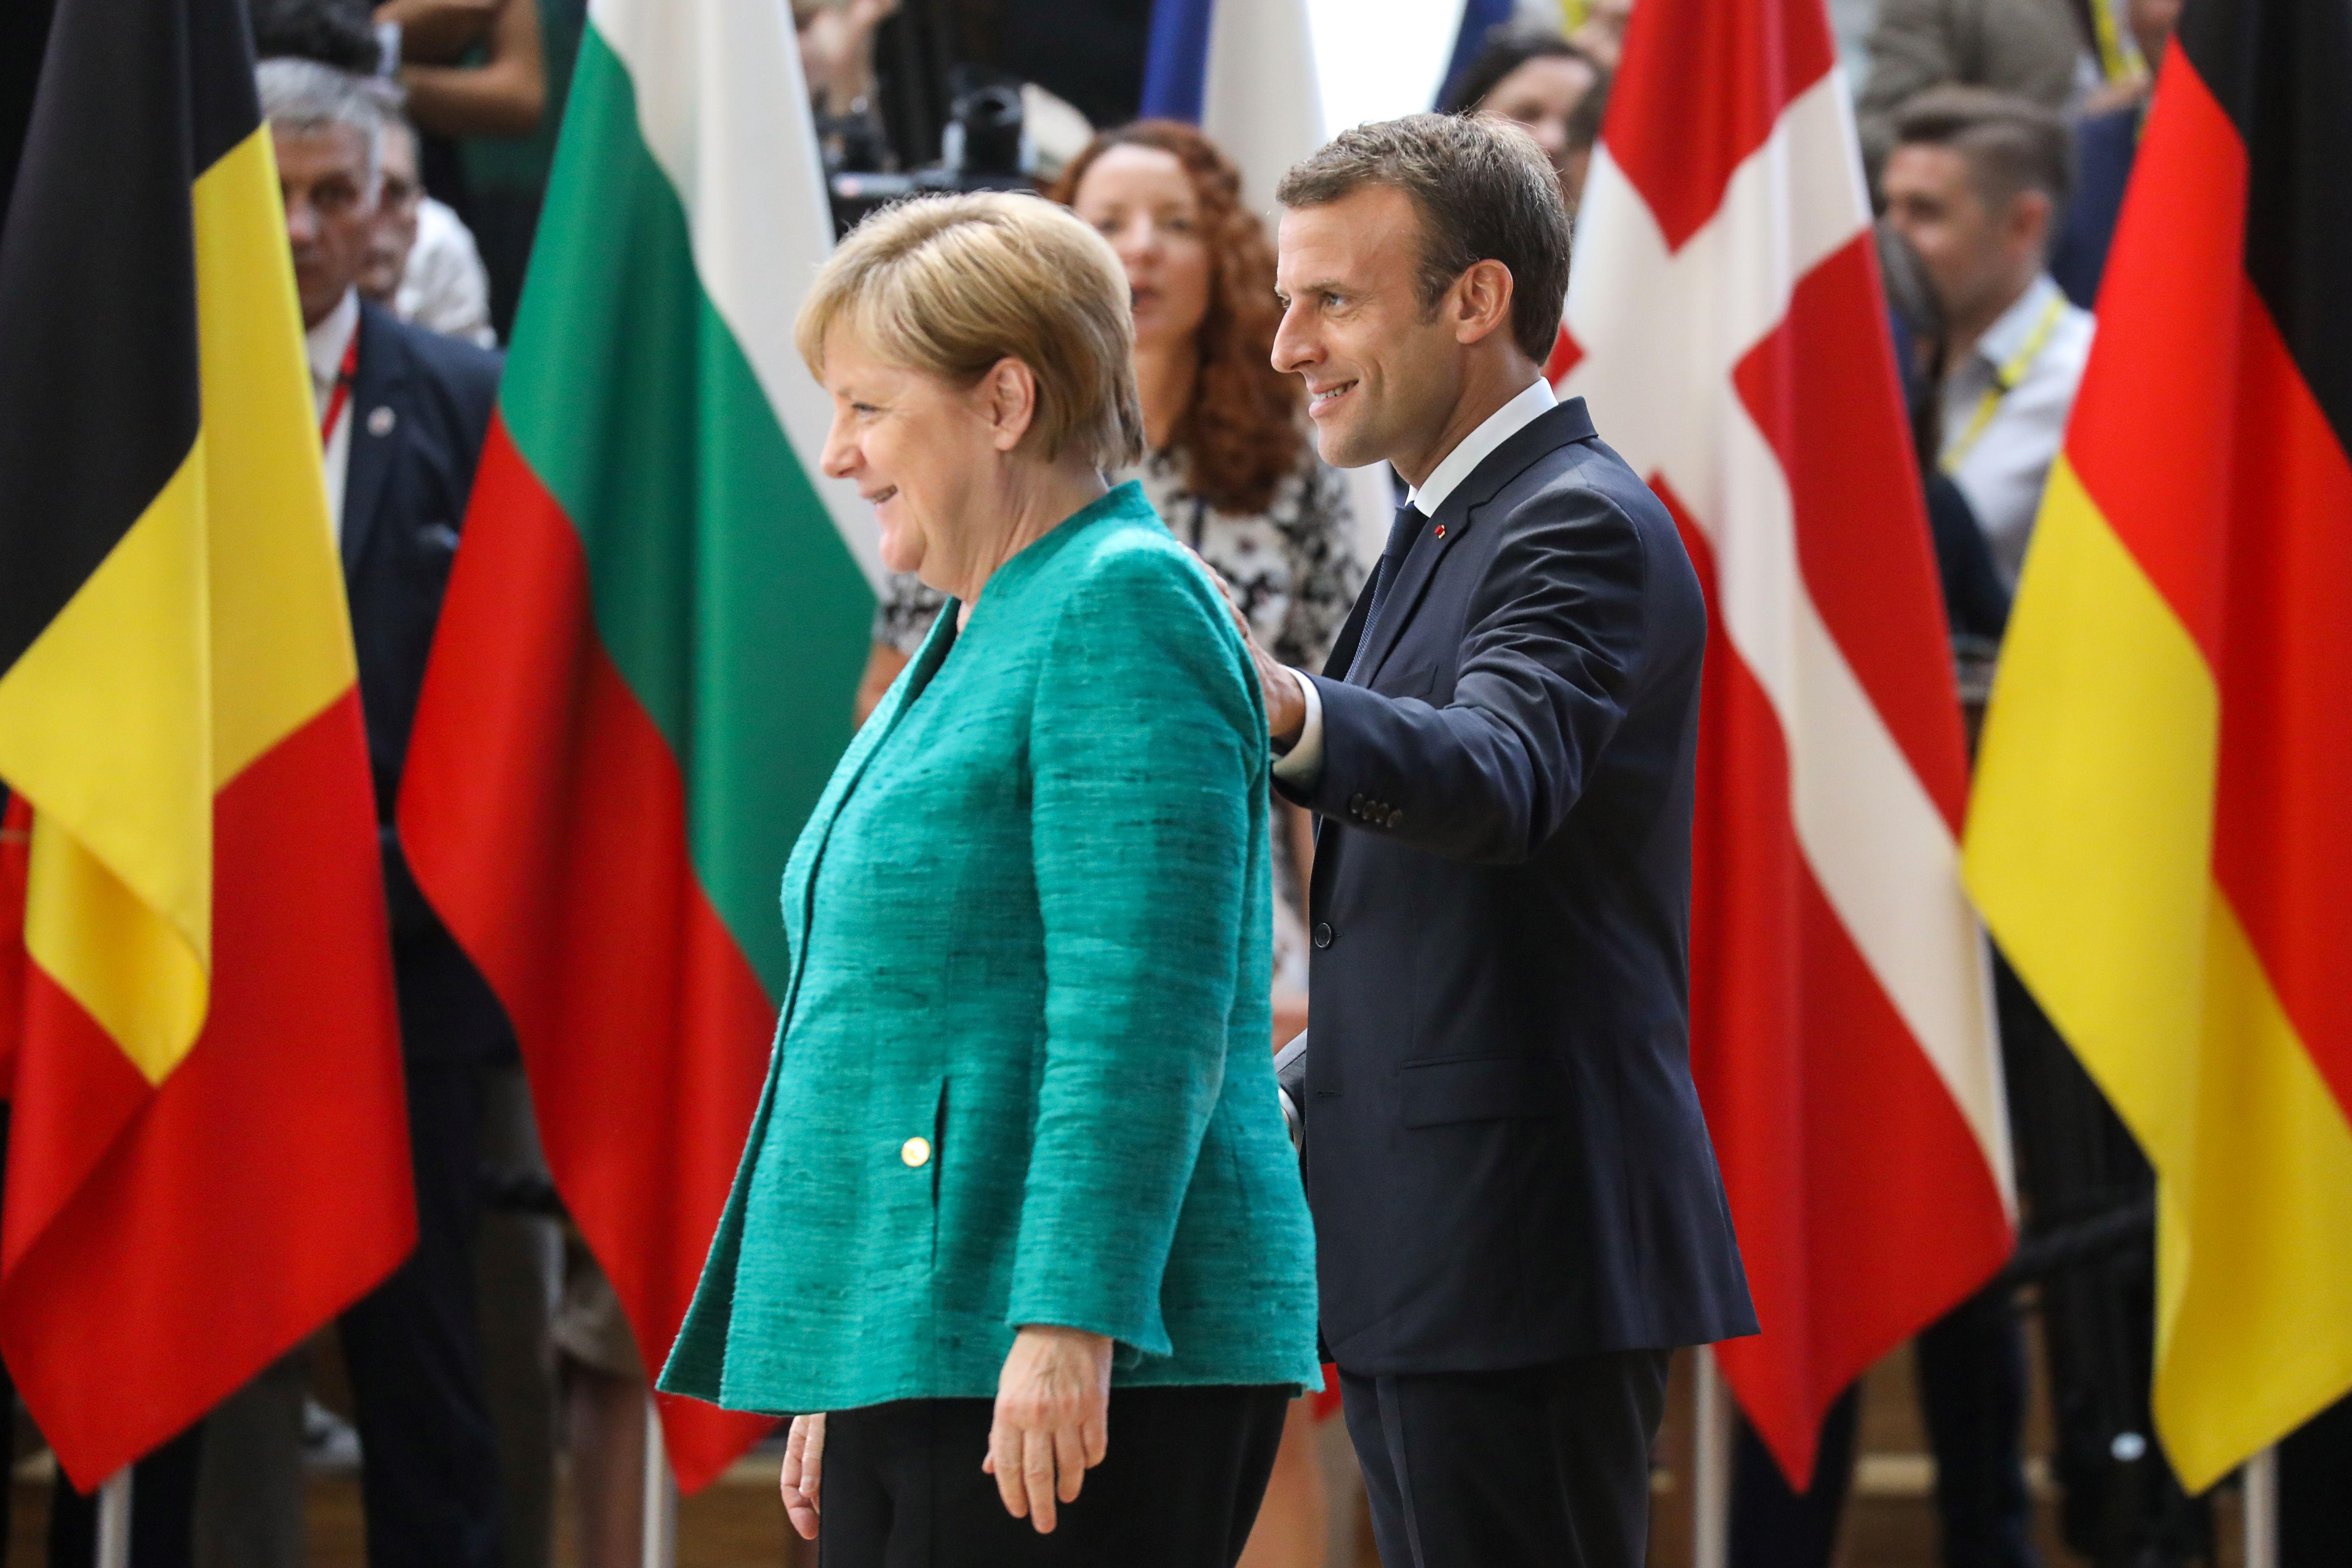 Angela Merkel and Emmanuel Macron in front of various European flags.